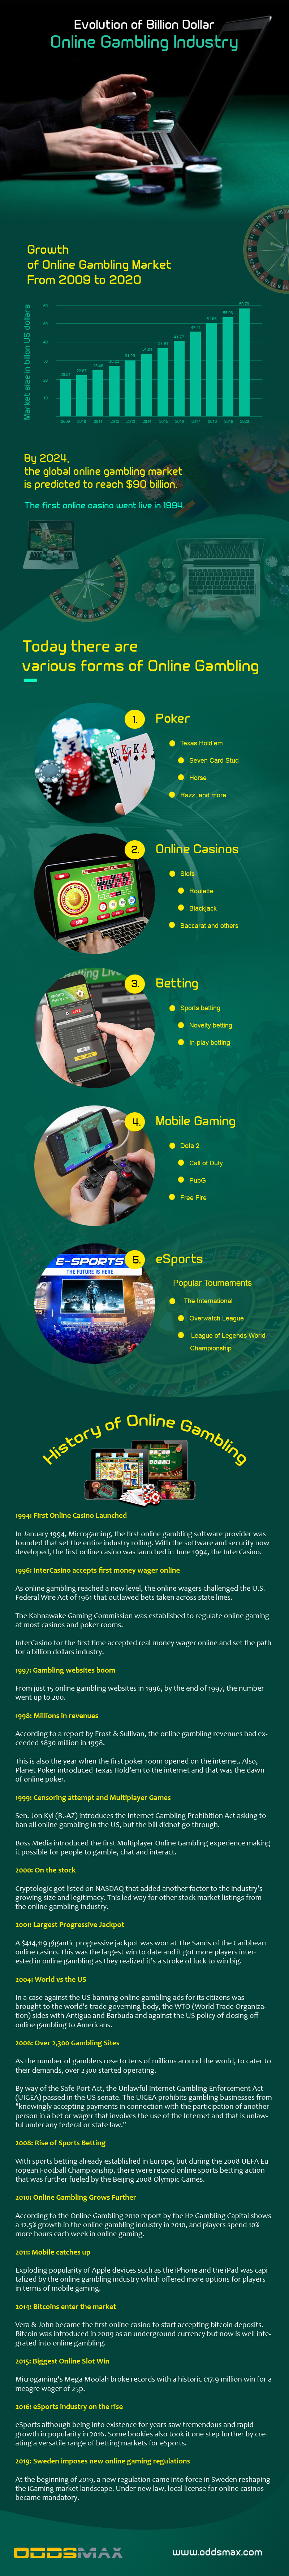 Evolution of Online Gambling 2020